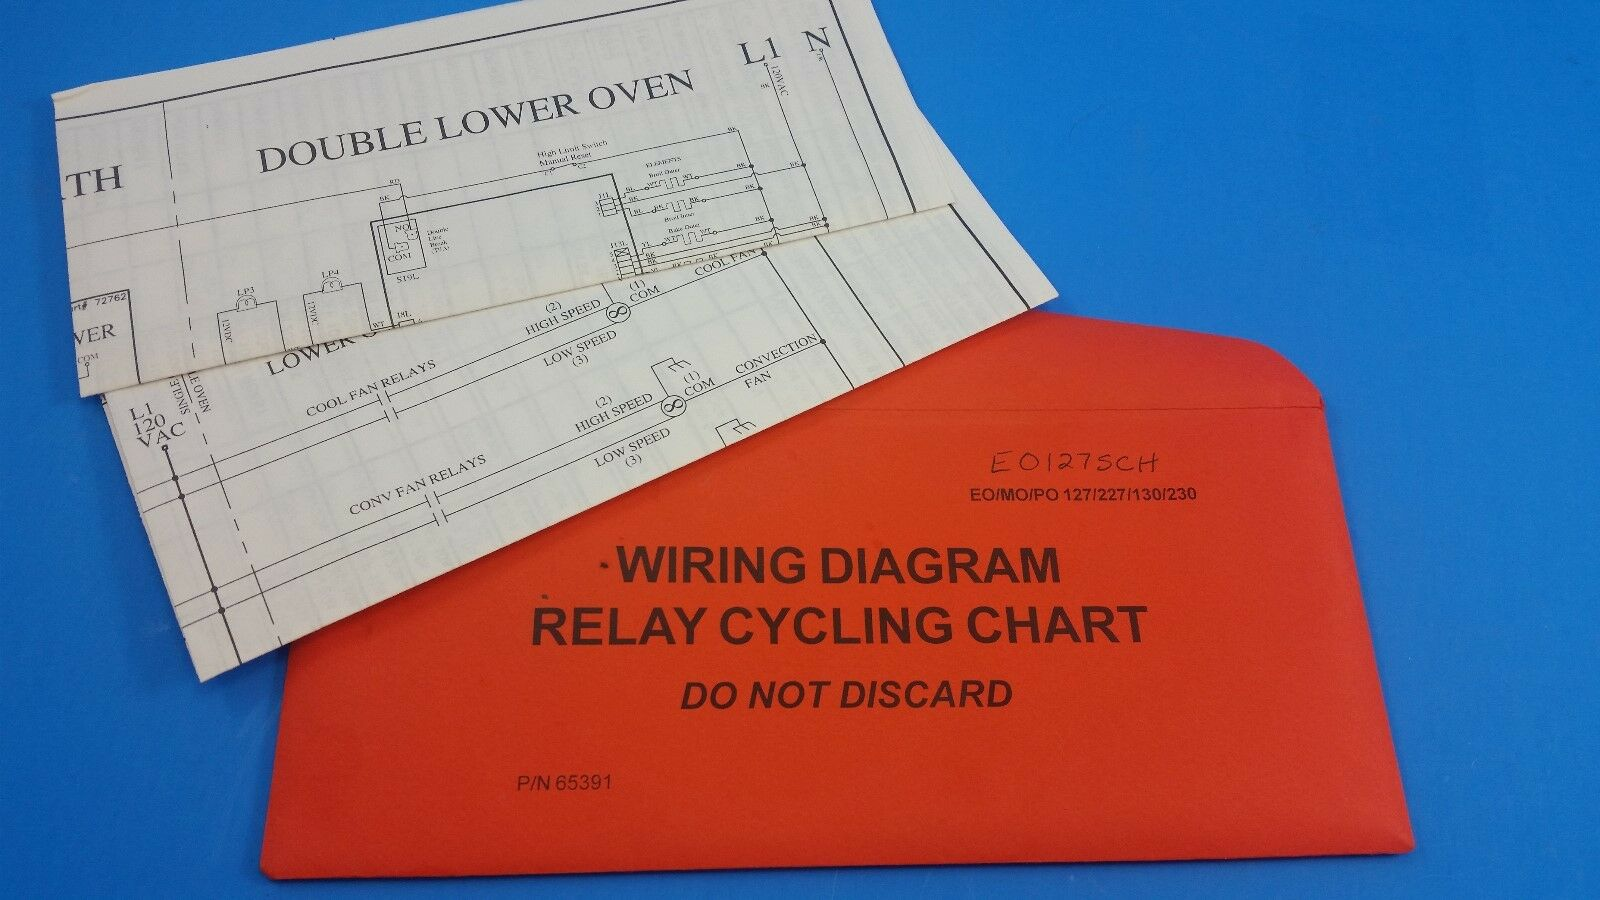 Wiring Diagram For Dacor Oven Trusted Diagrams Range 65391 Relay Cycling Chart C7 1a Ebay Cooktop